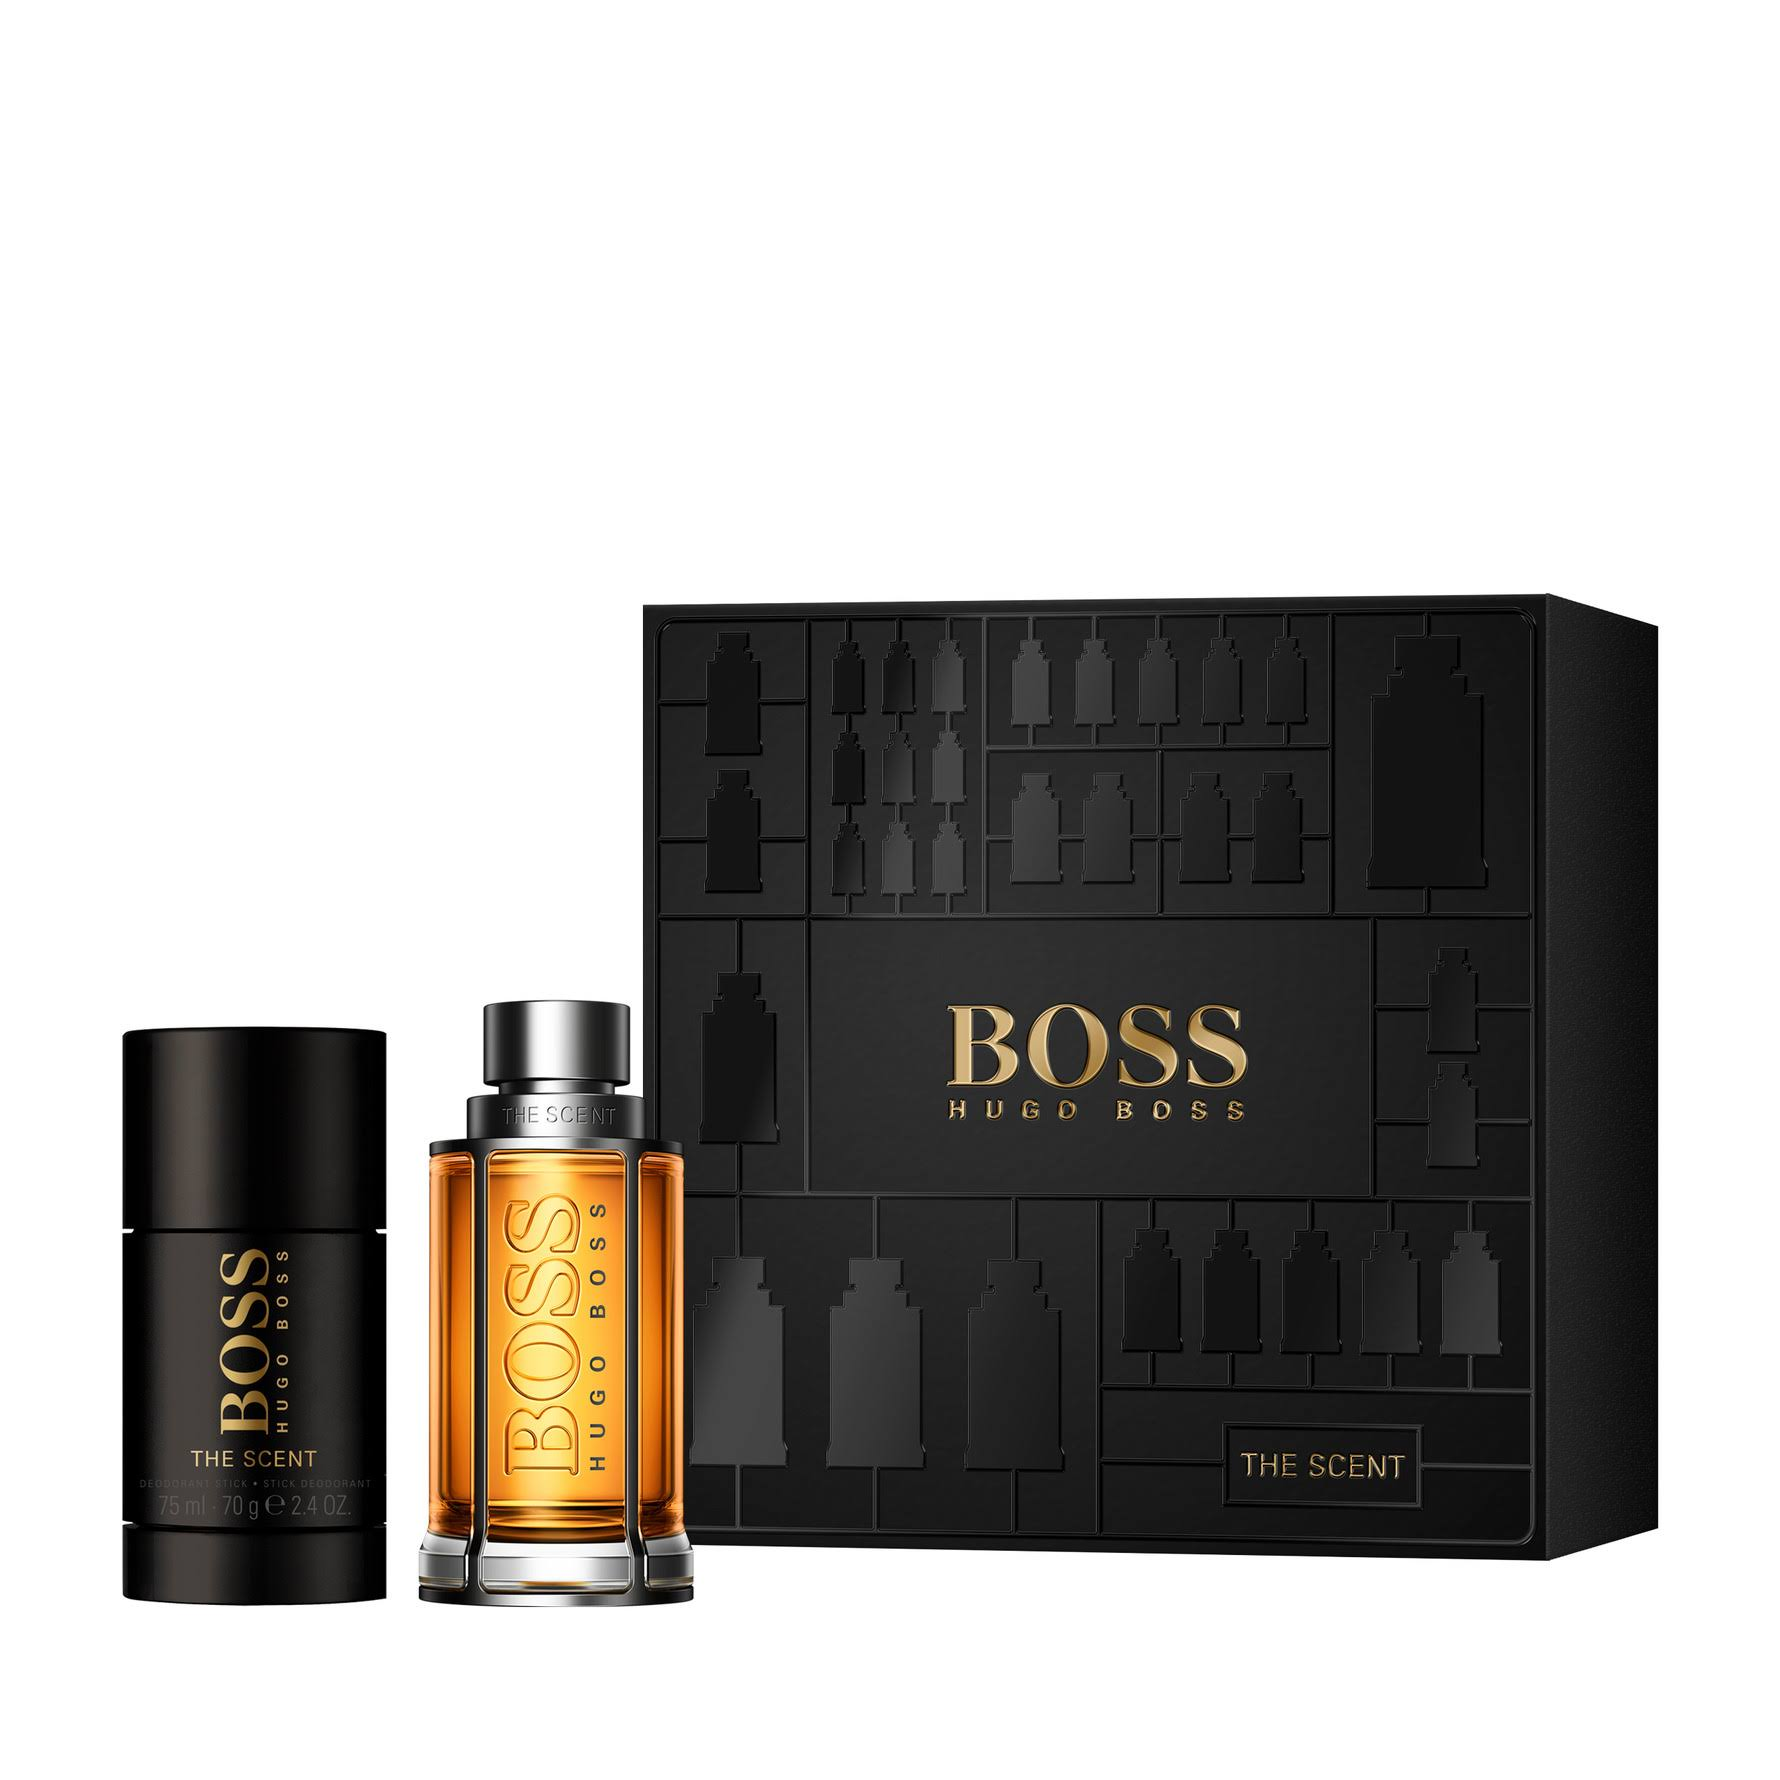 Hugo BOSS The Scent Eau De Toilette Gift Set for Him - 50ml